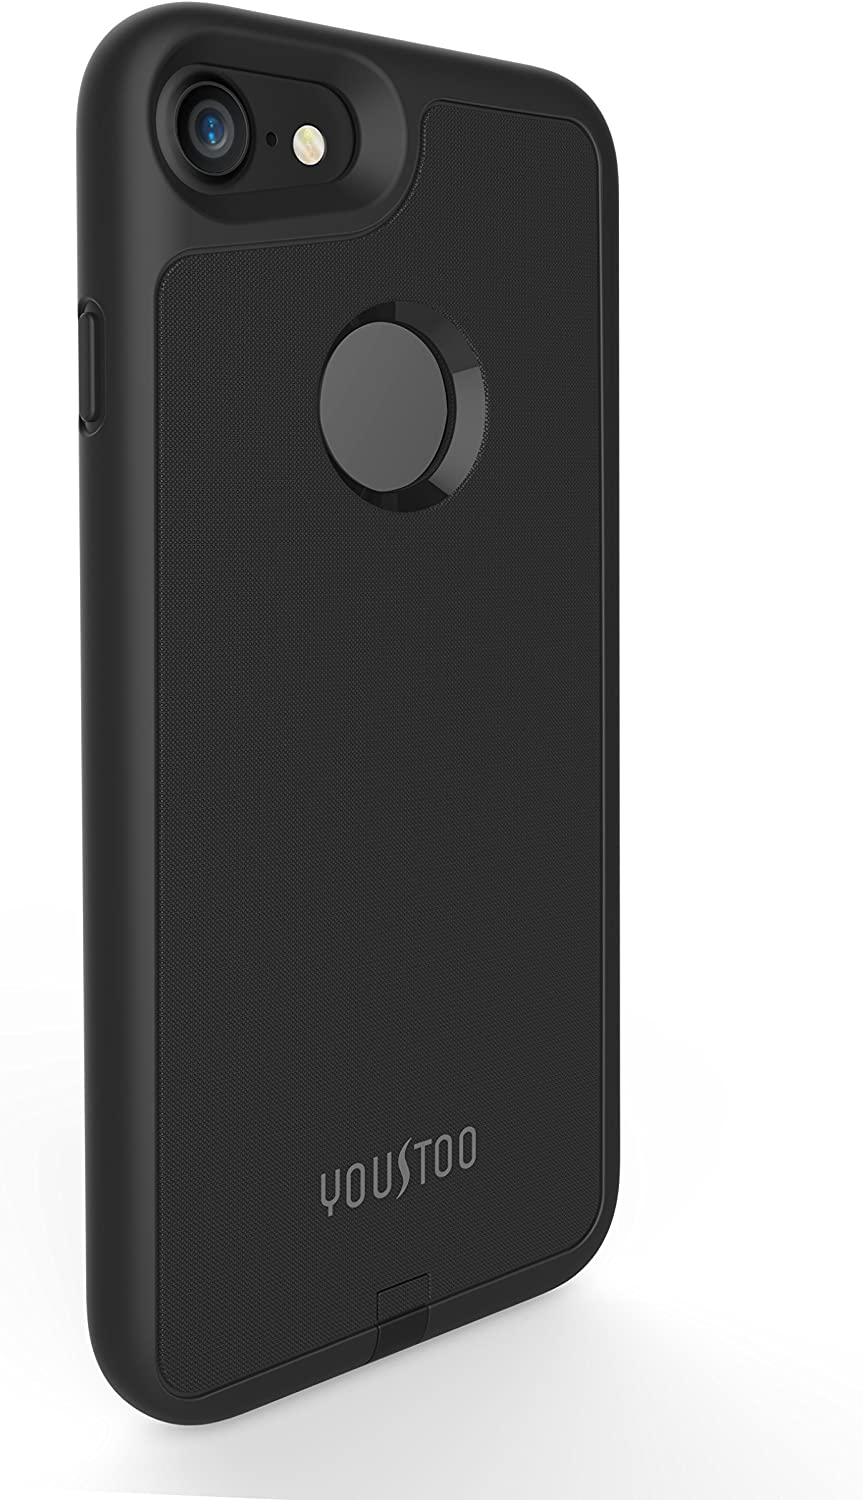 YOUSTOO iPhone 7 Wireless Charging Case, Qi Wireless Charger Charging Receiver Case Back Cover [No Built in Battery] [Not Magnetic] for iPhone 7